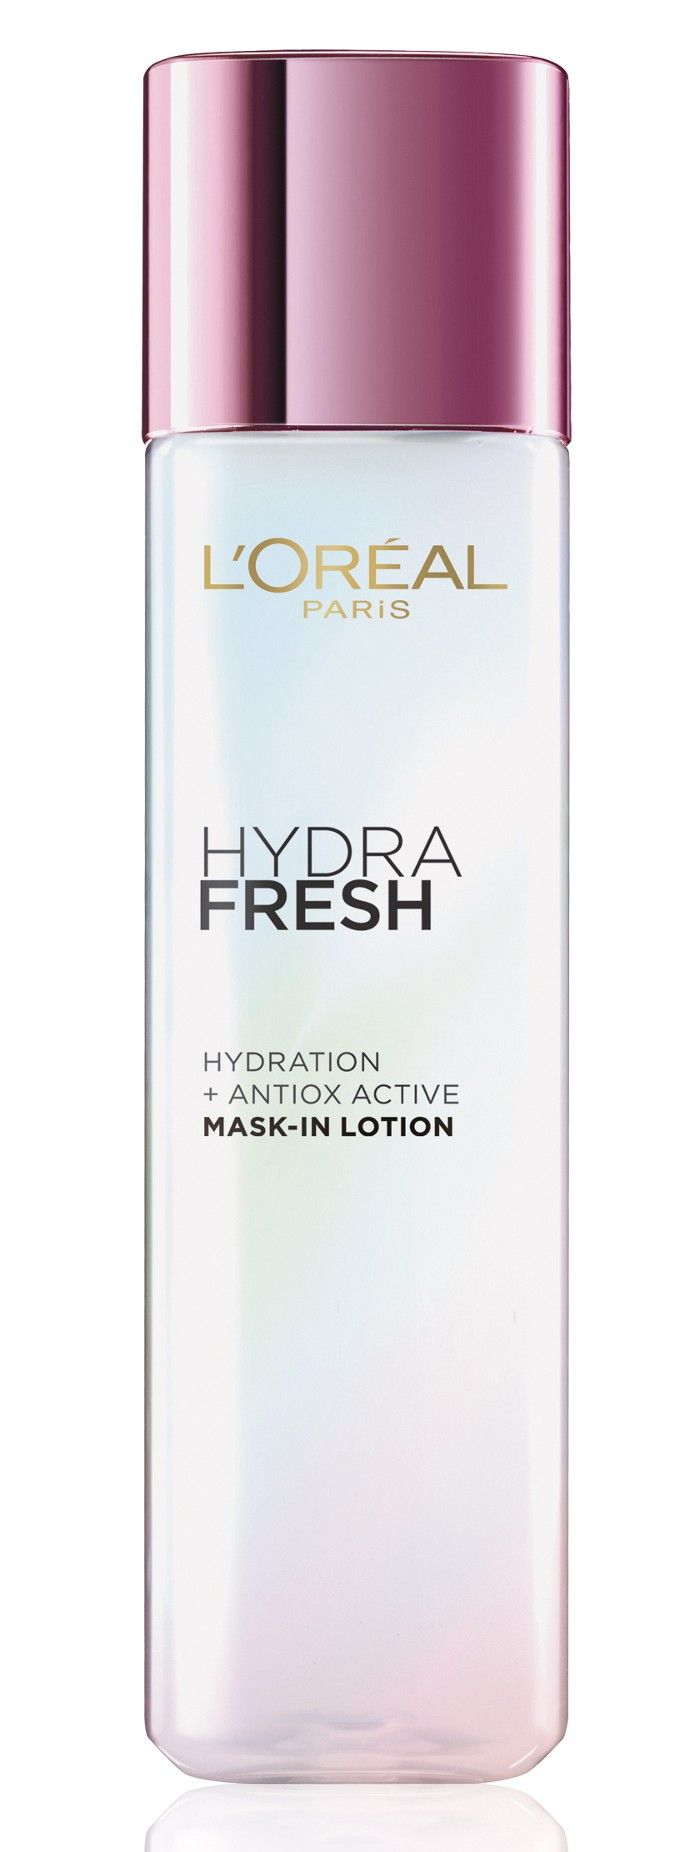 L'Oreal Paris Hydra Fresh Mask In Lotion To Buy : http://onerx.in/loreal-paris-hydra-fresh-mask-in-lotion.html